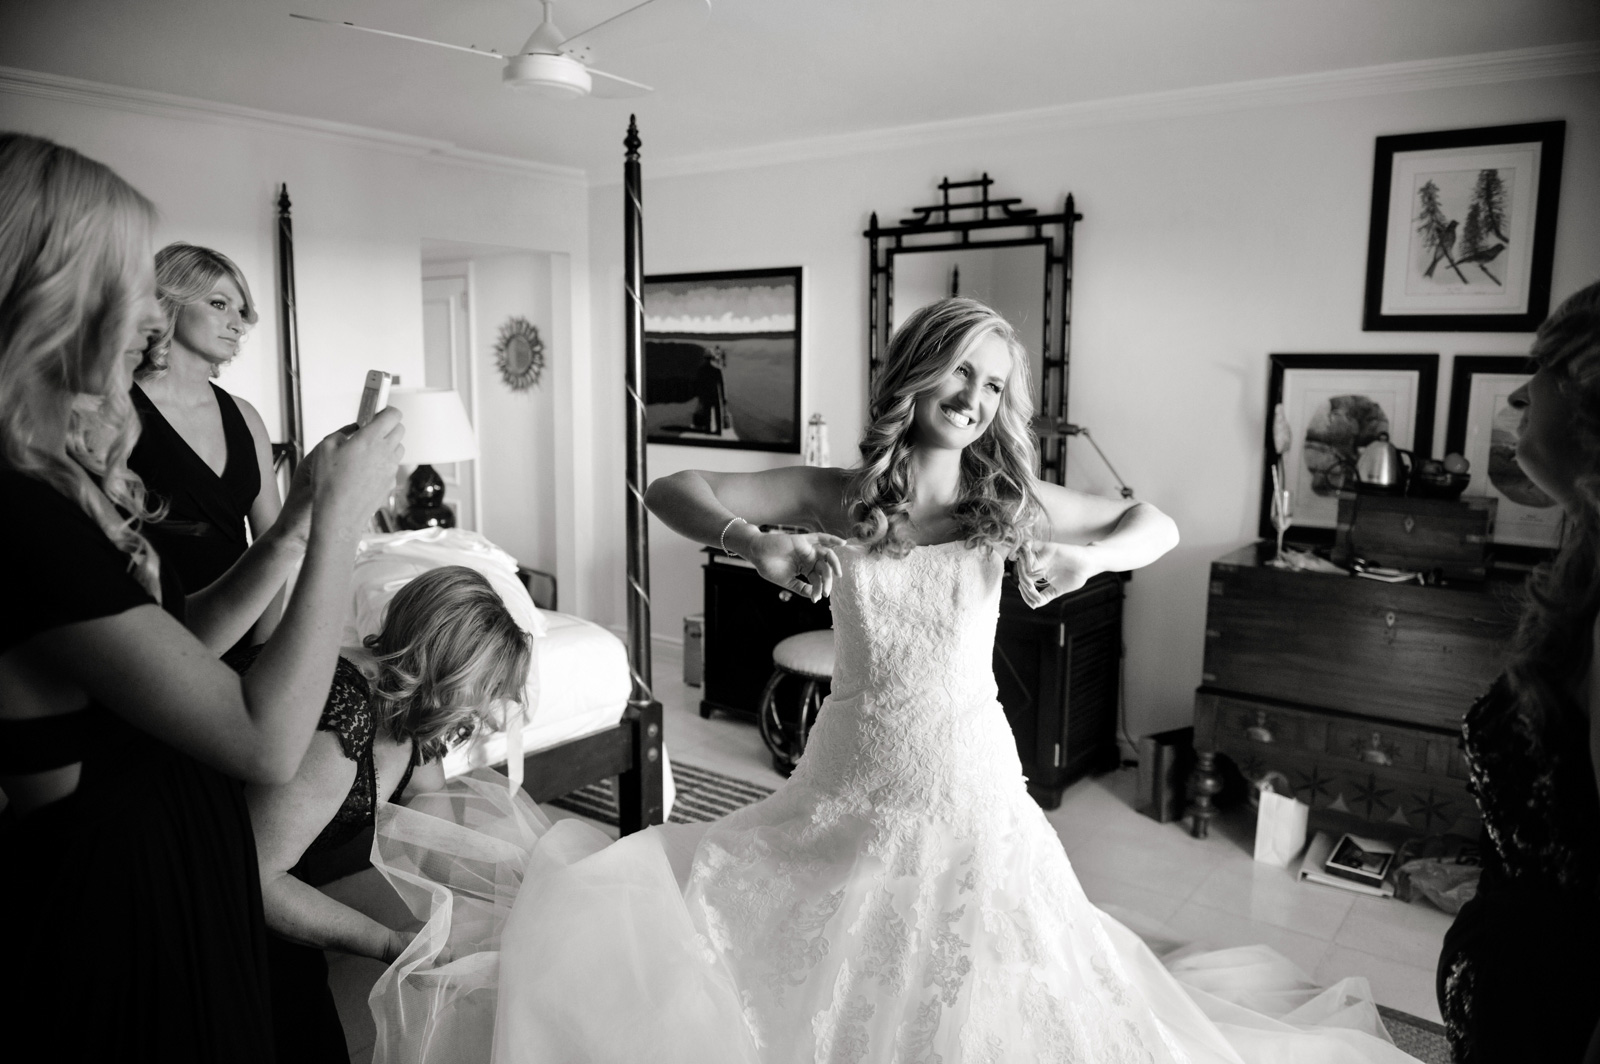 Bride getting into dress Wedding at the Oyster Box Hotel Durban South Africa